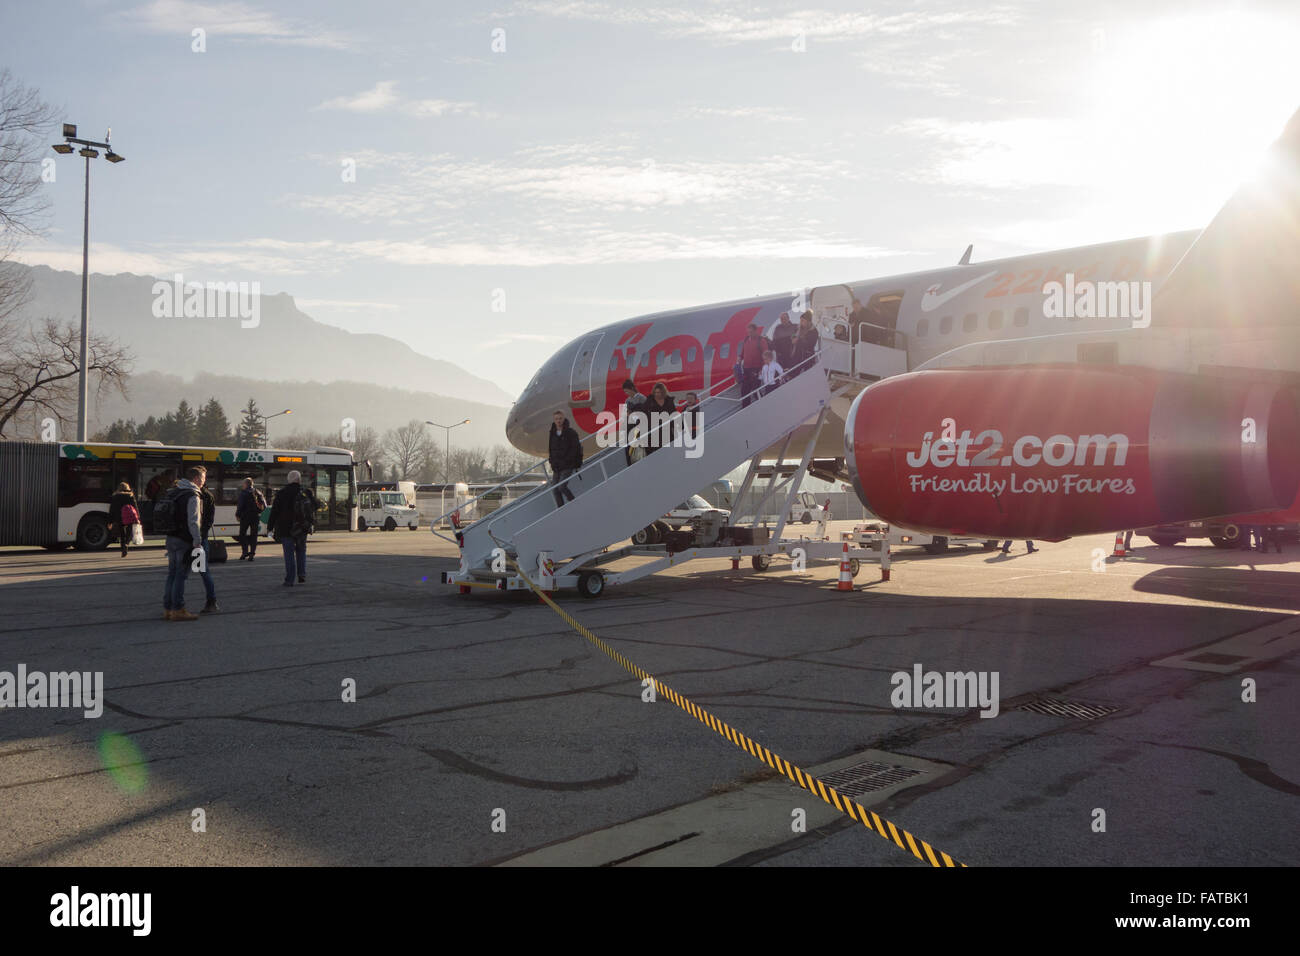 passengers disembarking from Jet2 plane at Chambery airport, France - Stock Image